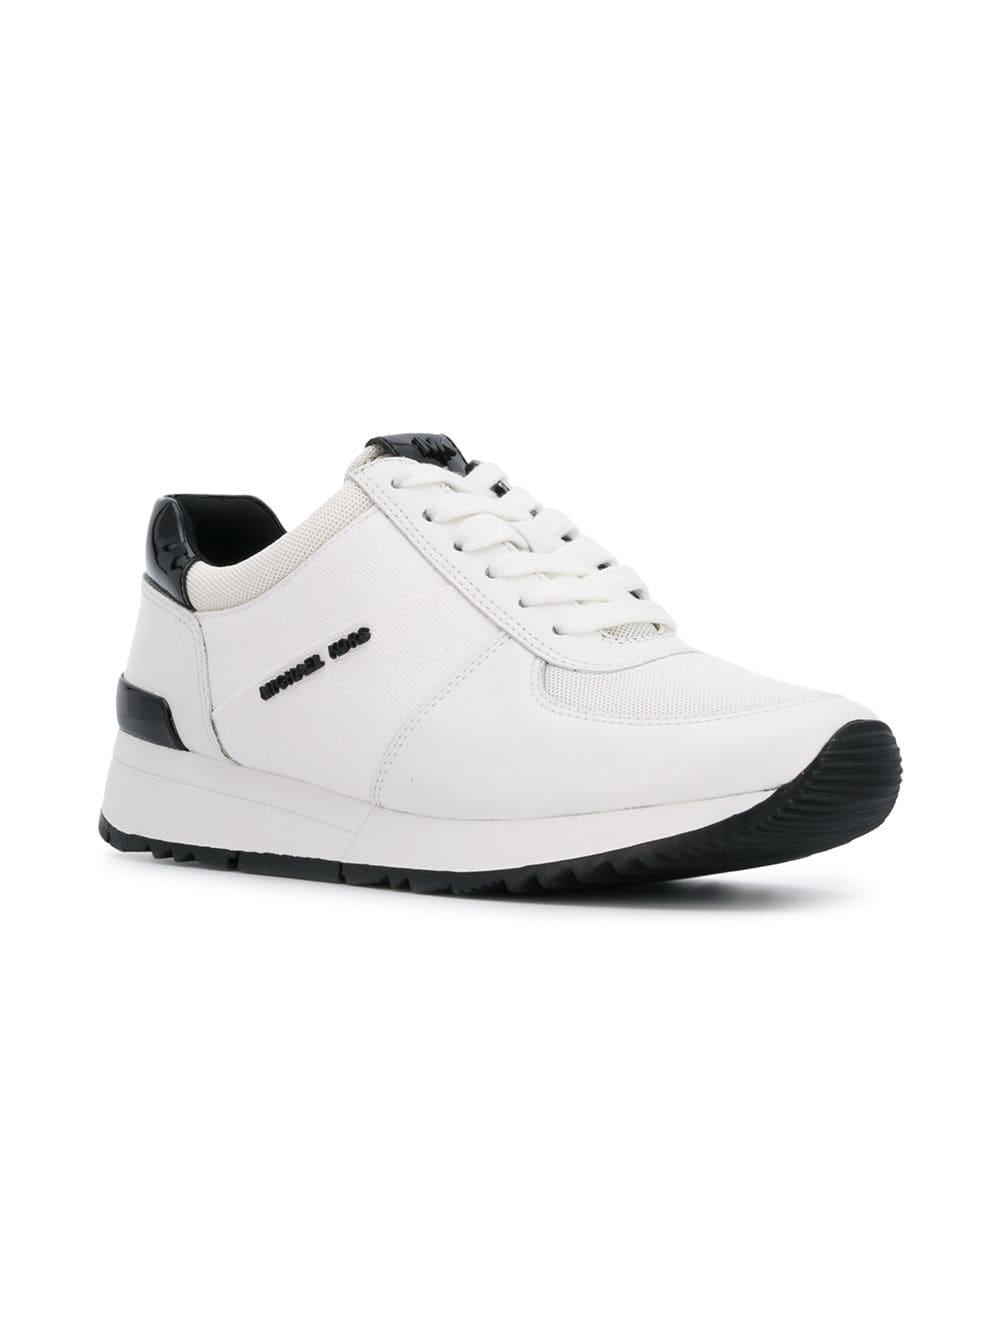 MICHAEL Michael Kors Leather Allie Sneakers in White